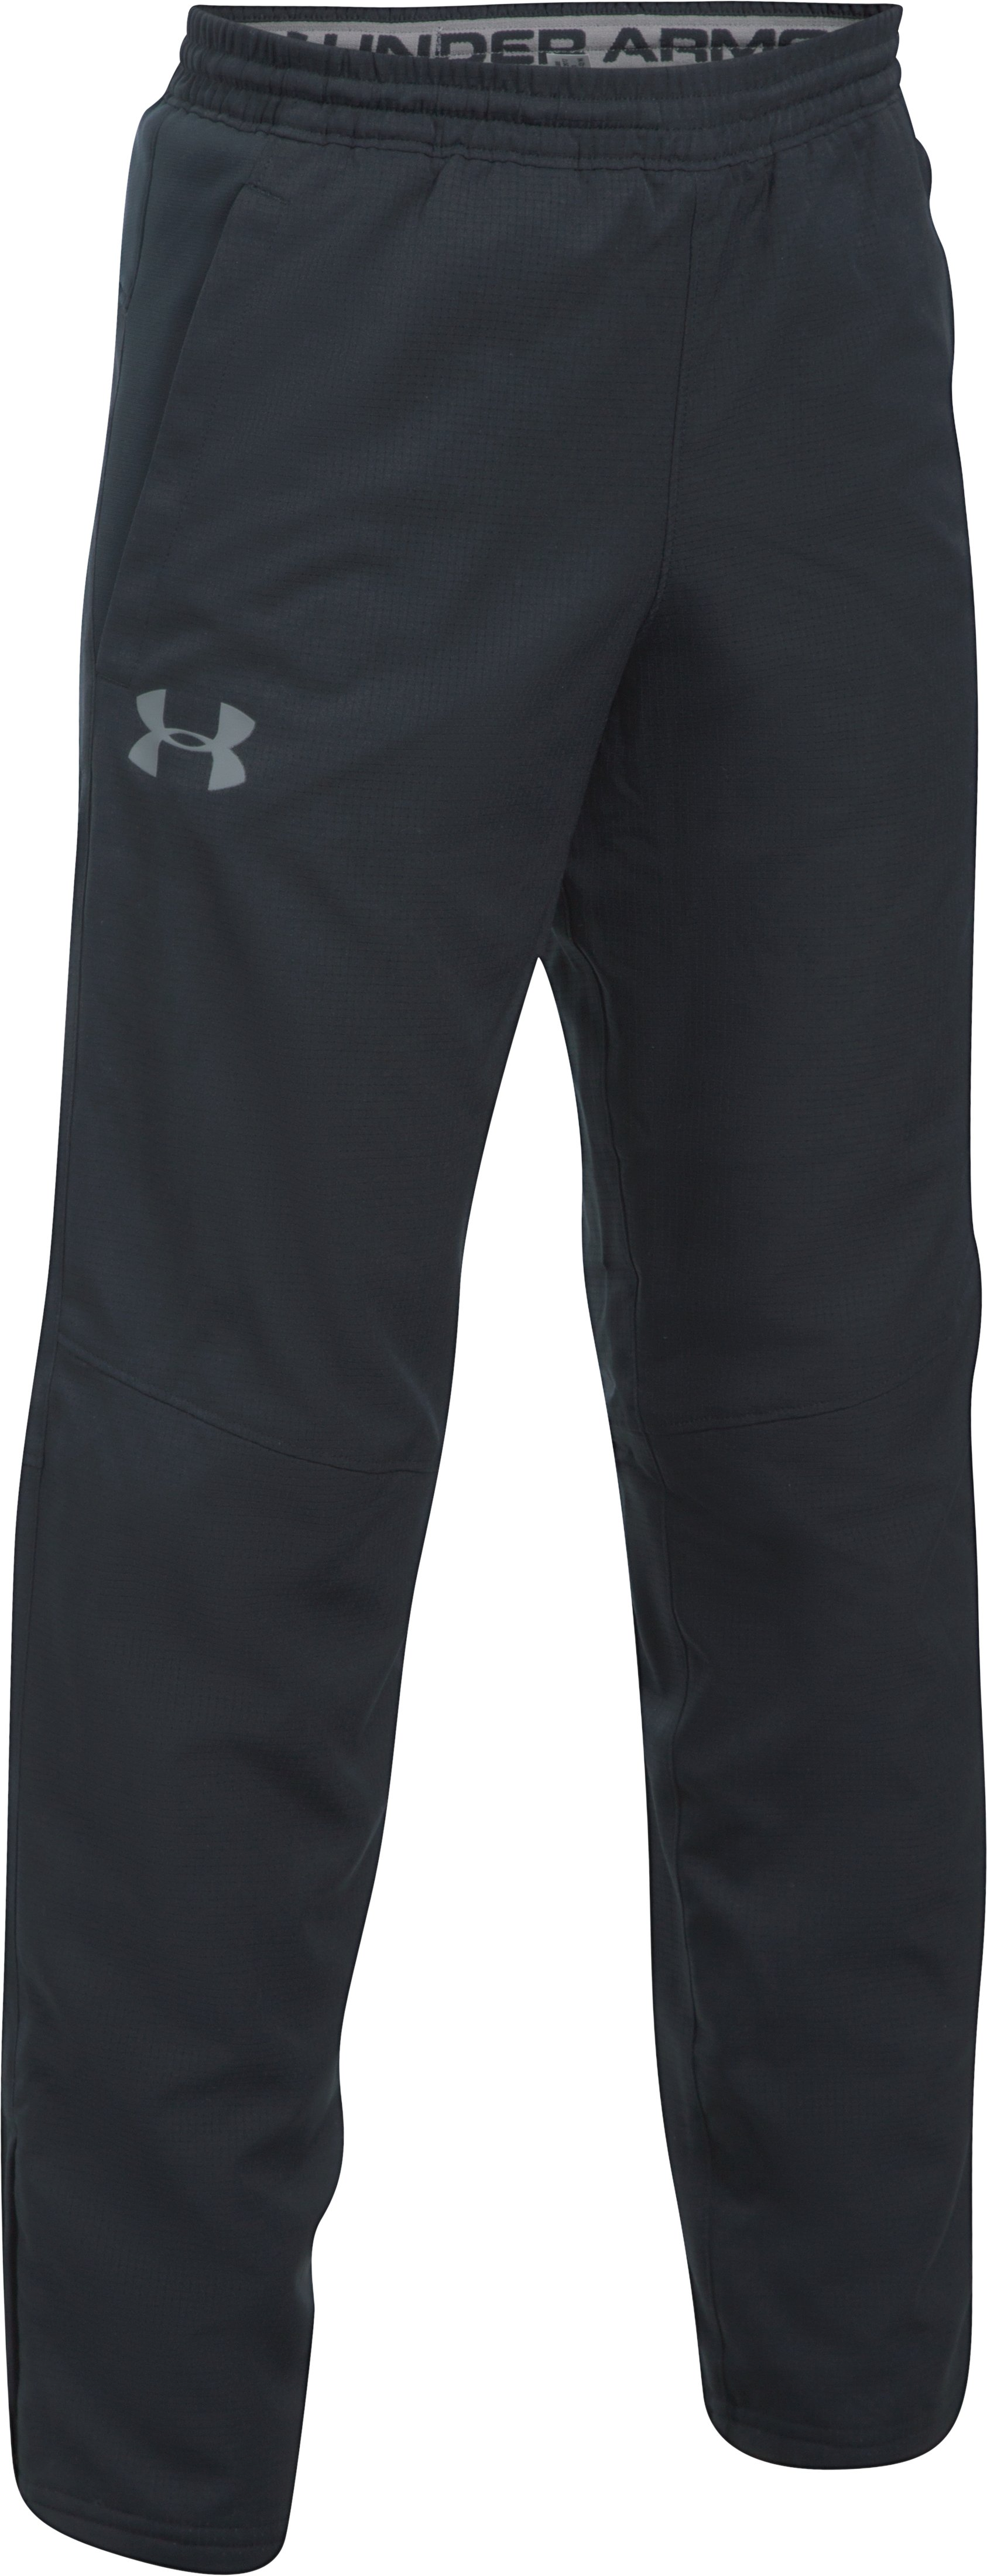 Boys' UA Construckt ColdGear® Reactor Pants, Black